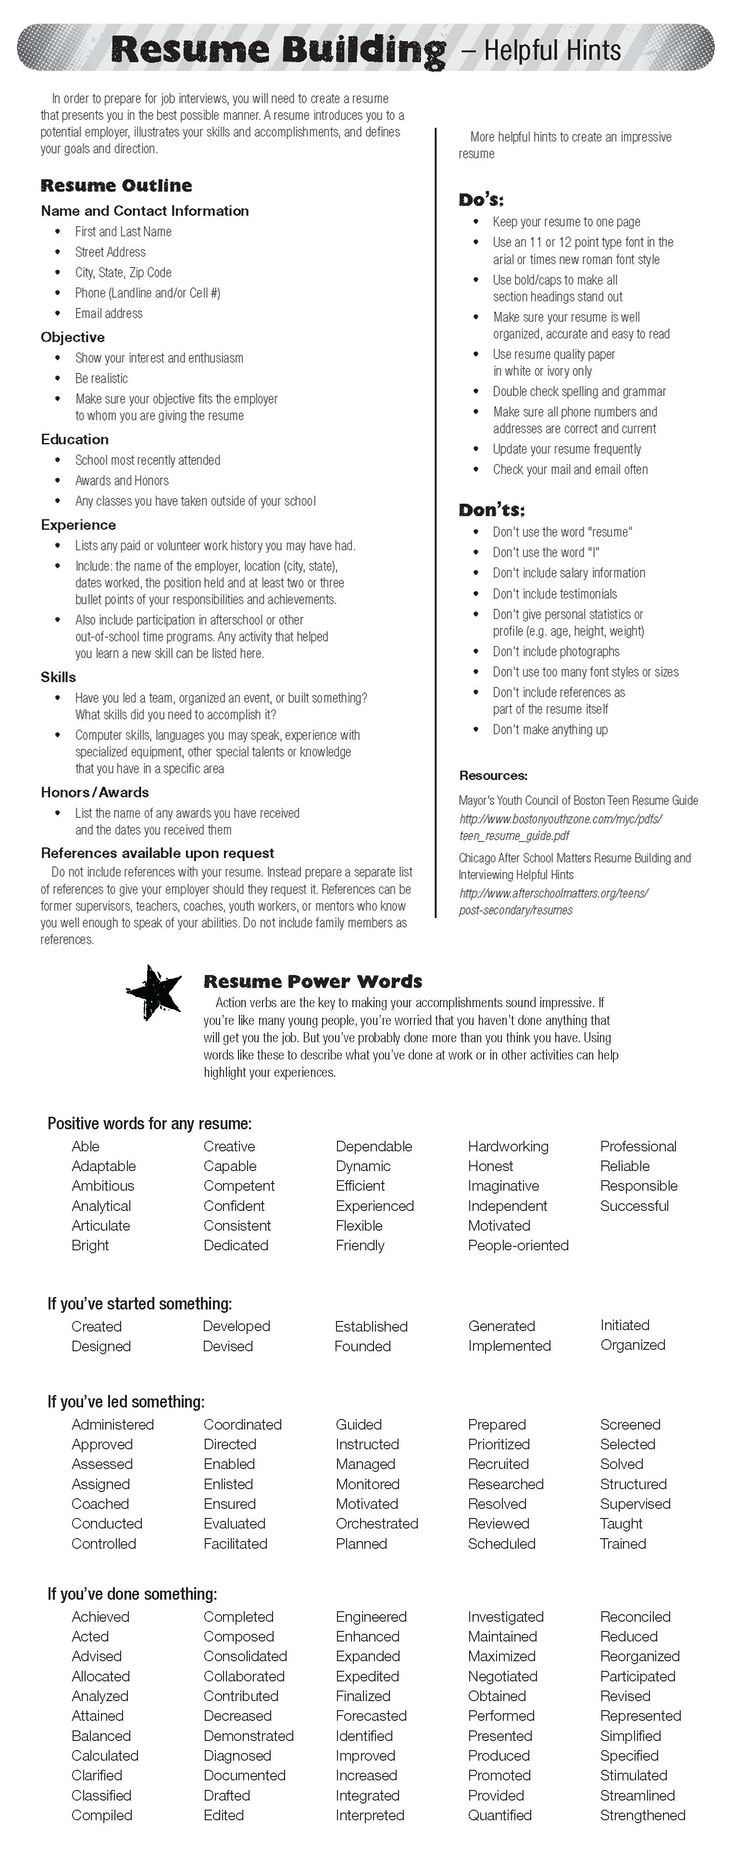 Opposenewapstandardsus  Mesmerizing  Ideas About Resume On Pinterest  Cv Format Resume Cv And  With Excellent  Ideas About Resume On Pinterest  Cv Format Resume Cv And Resume Templates With Amazing What Do A Resume Look Like Also Sample Of Customer Service Resume In Addition Professional Resume Font And Strong Communication Skills Resume Examples As Well As Latex Resume Template Phd Additionally Customer Service Retail Resume From Pinterestcom With Opposenewapstandardsus  Excellent  Ideas About Resume On Pinterest  Cv Format Resume Cv And  With Amazing  Ideas About Resume On Pinterest  Cv Format Resume Cv And Resume Templates And Mesmerizing What Do A Resume Look Like Also Sample Of Customer Service Resume In Addition Professional Resume Font From Pinterestcom